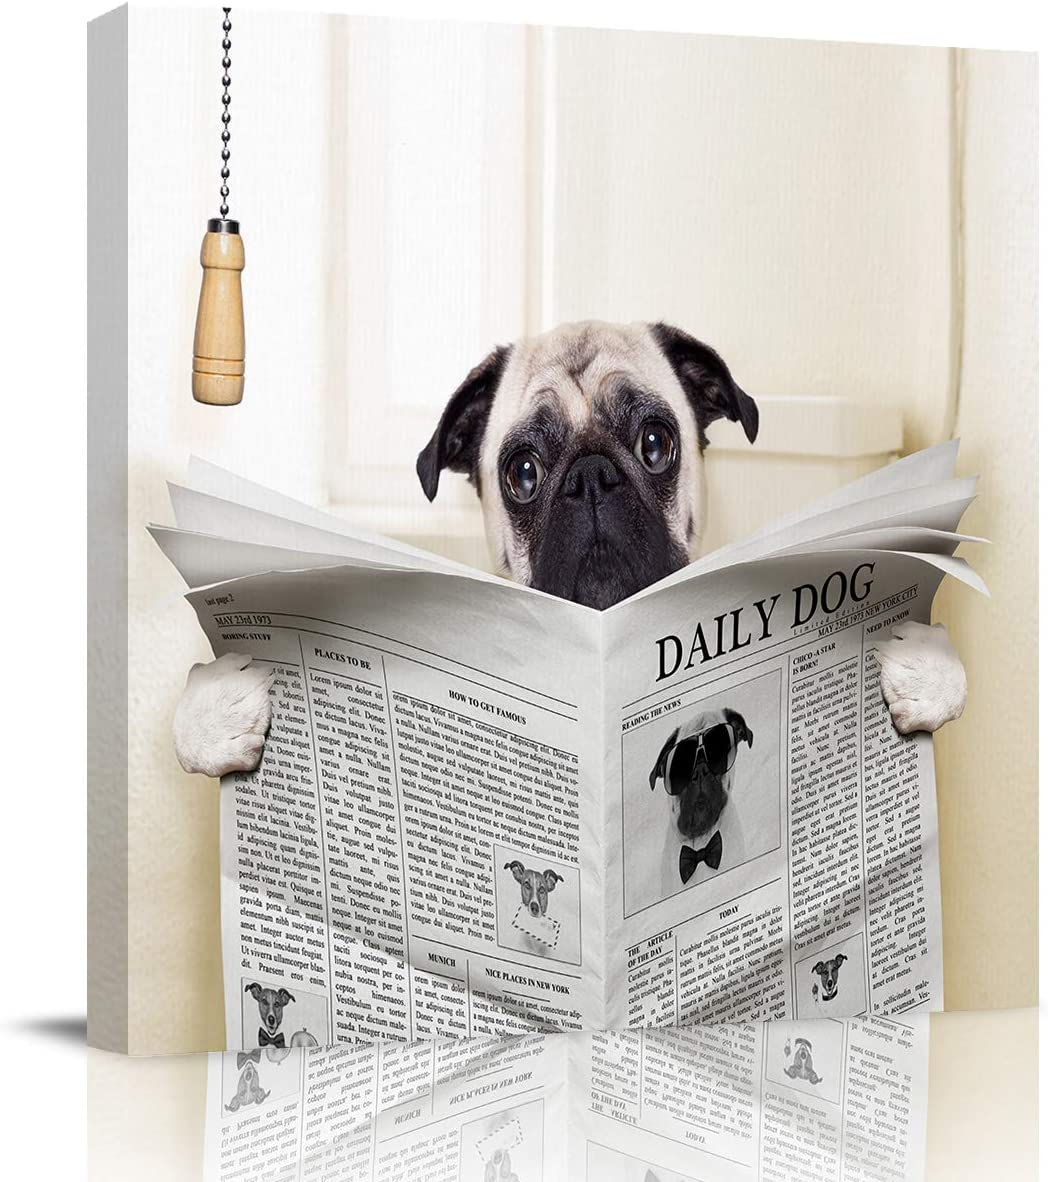 Abstract Wall Art on Canvas for Bedroom Living Room Bathrooms Kitchen,Funny Pug Dog Reading Newspaper Animal Print Artworks Office Home Decor,Stretched by Wooden Frame,Ready to Hang,8x8in